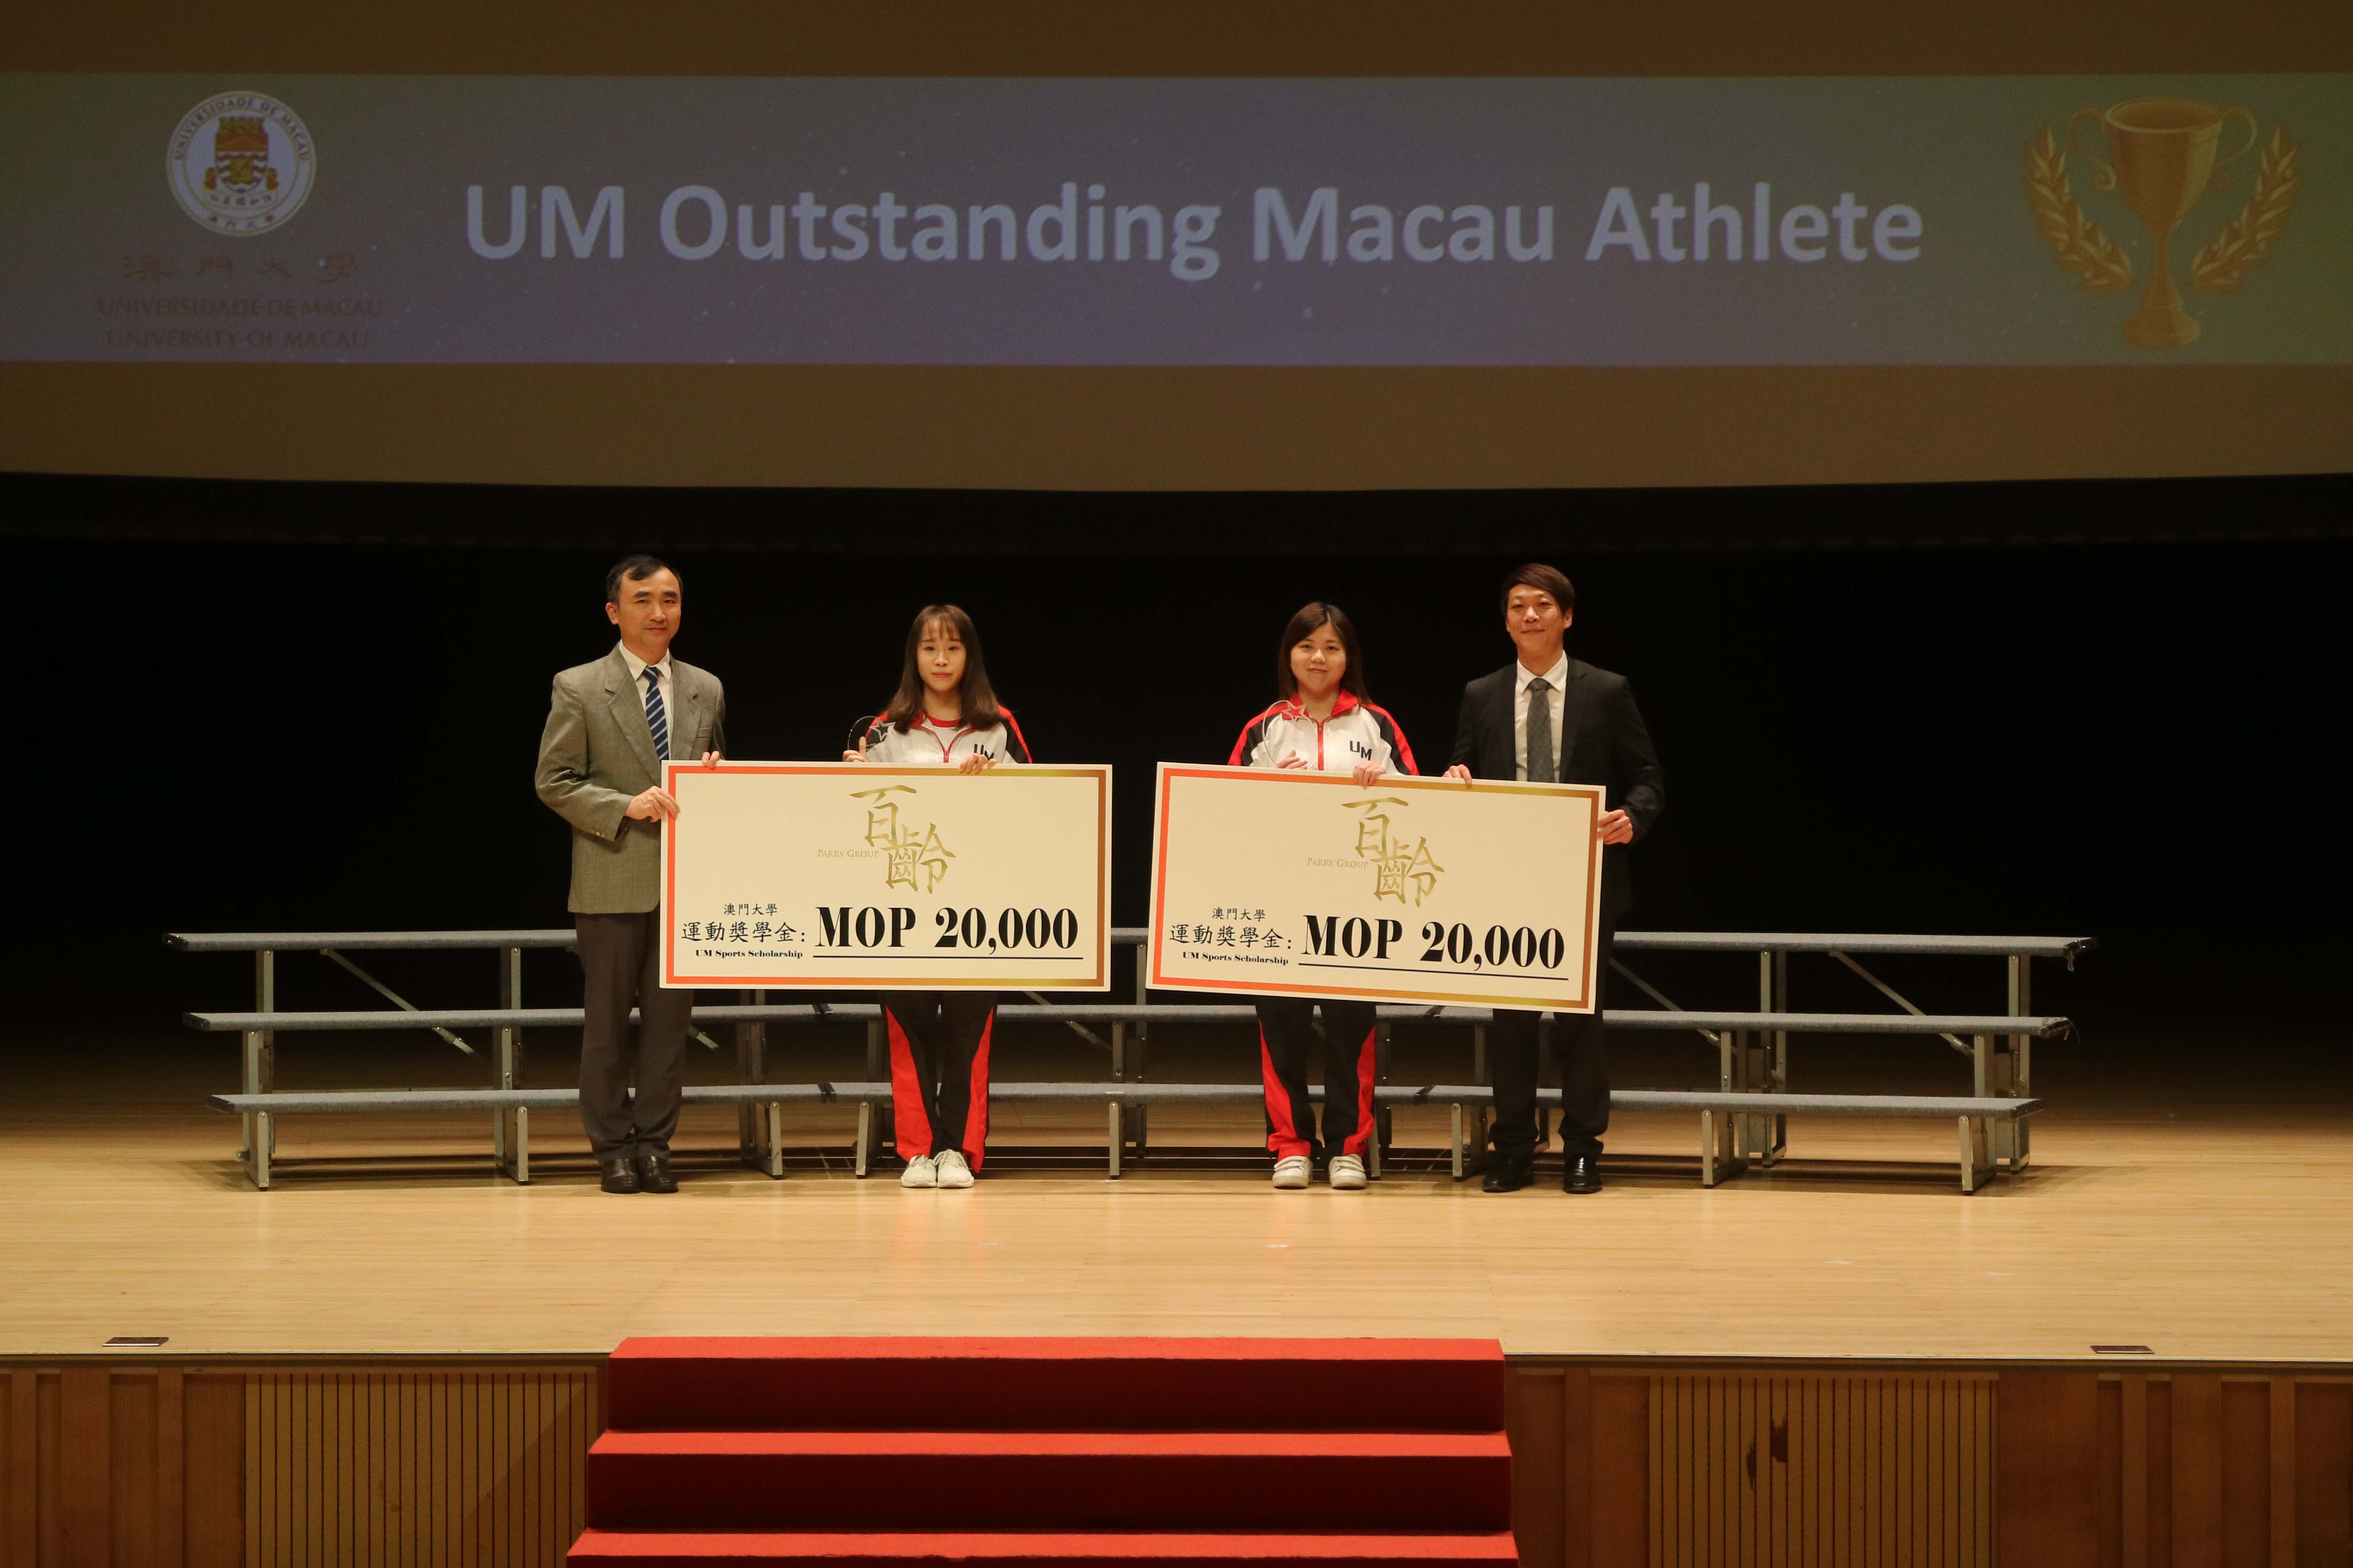 Two students receive the UM Outstanding Macau Athlete Scholarship